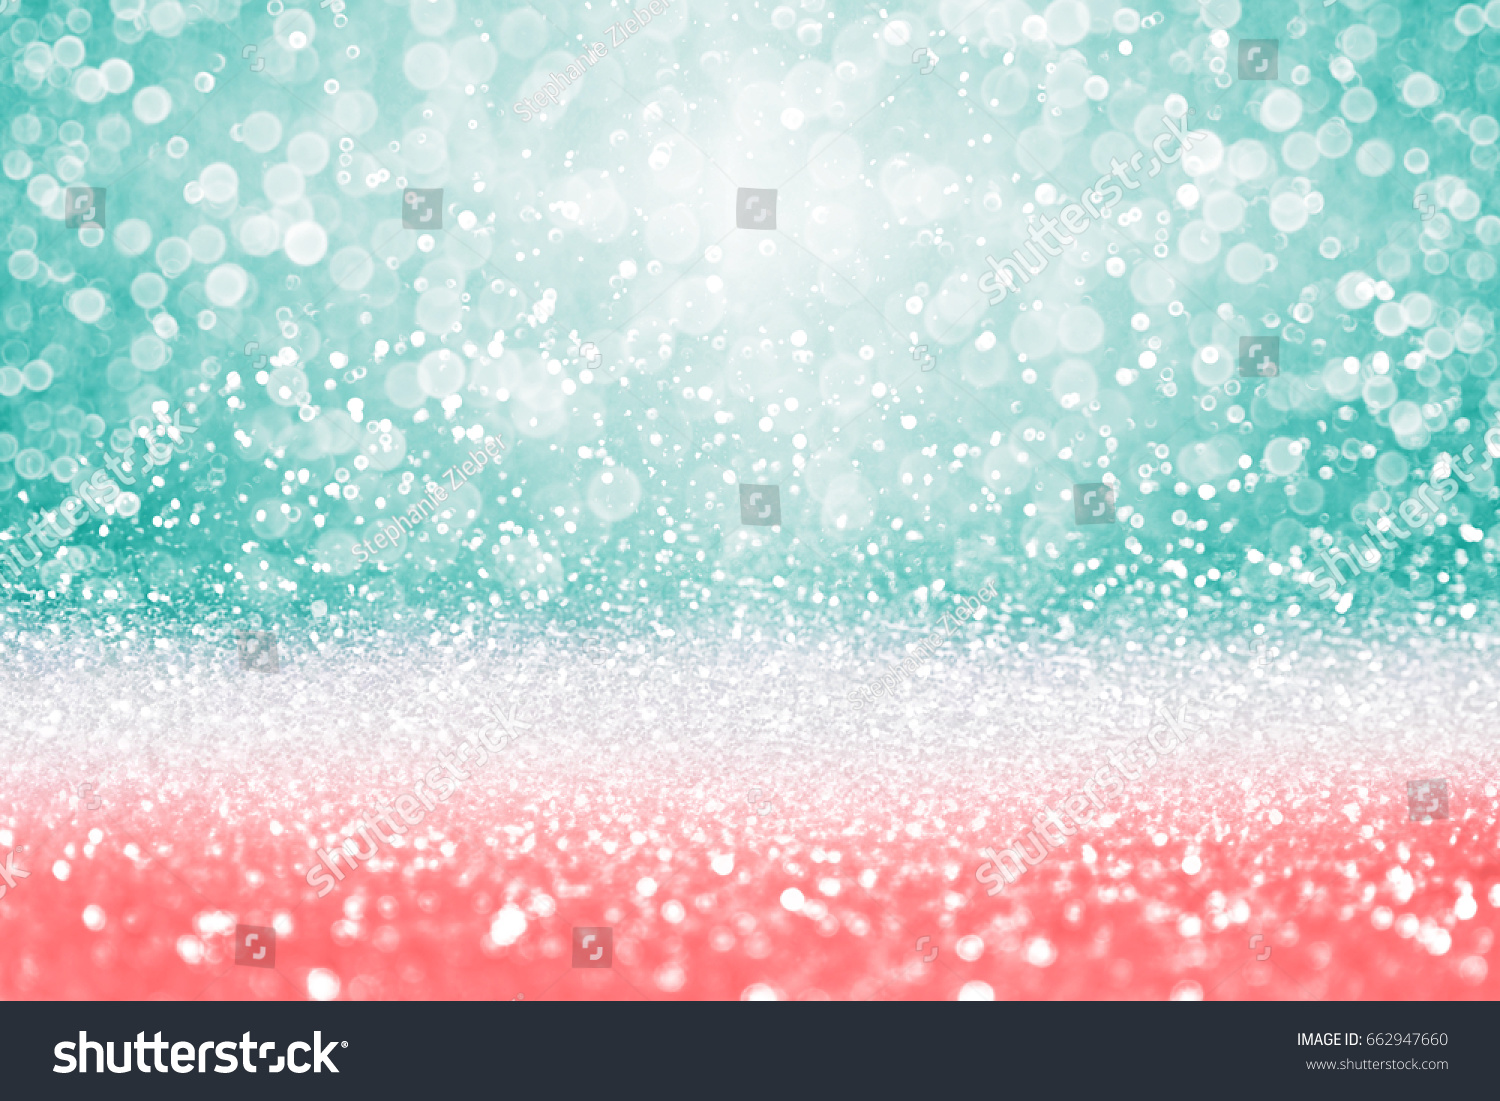 Abstract Teal Green Glitter Coral Pink Stock Photo ...